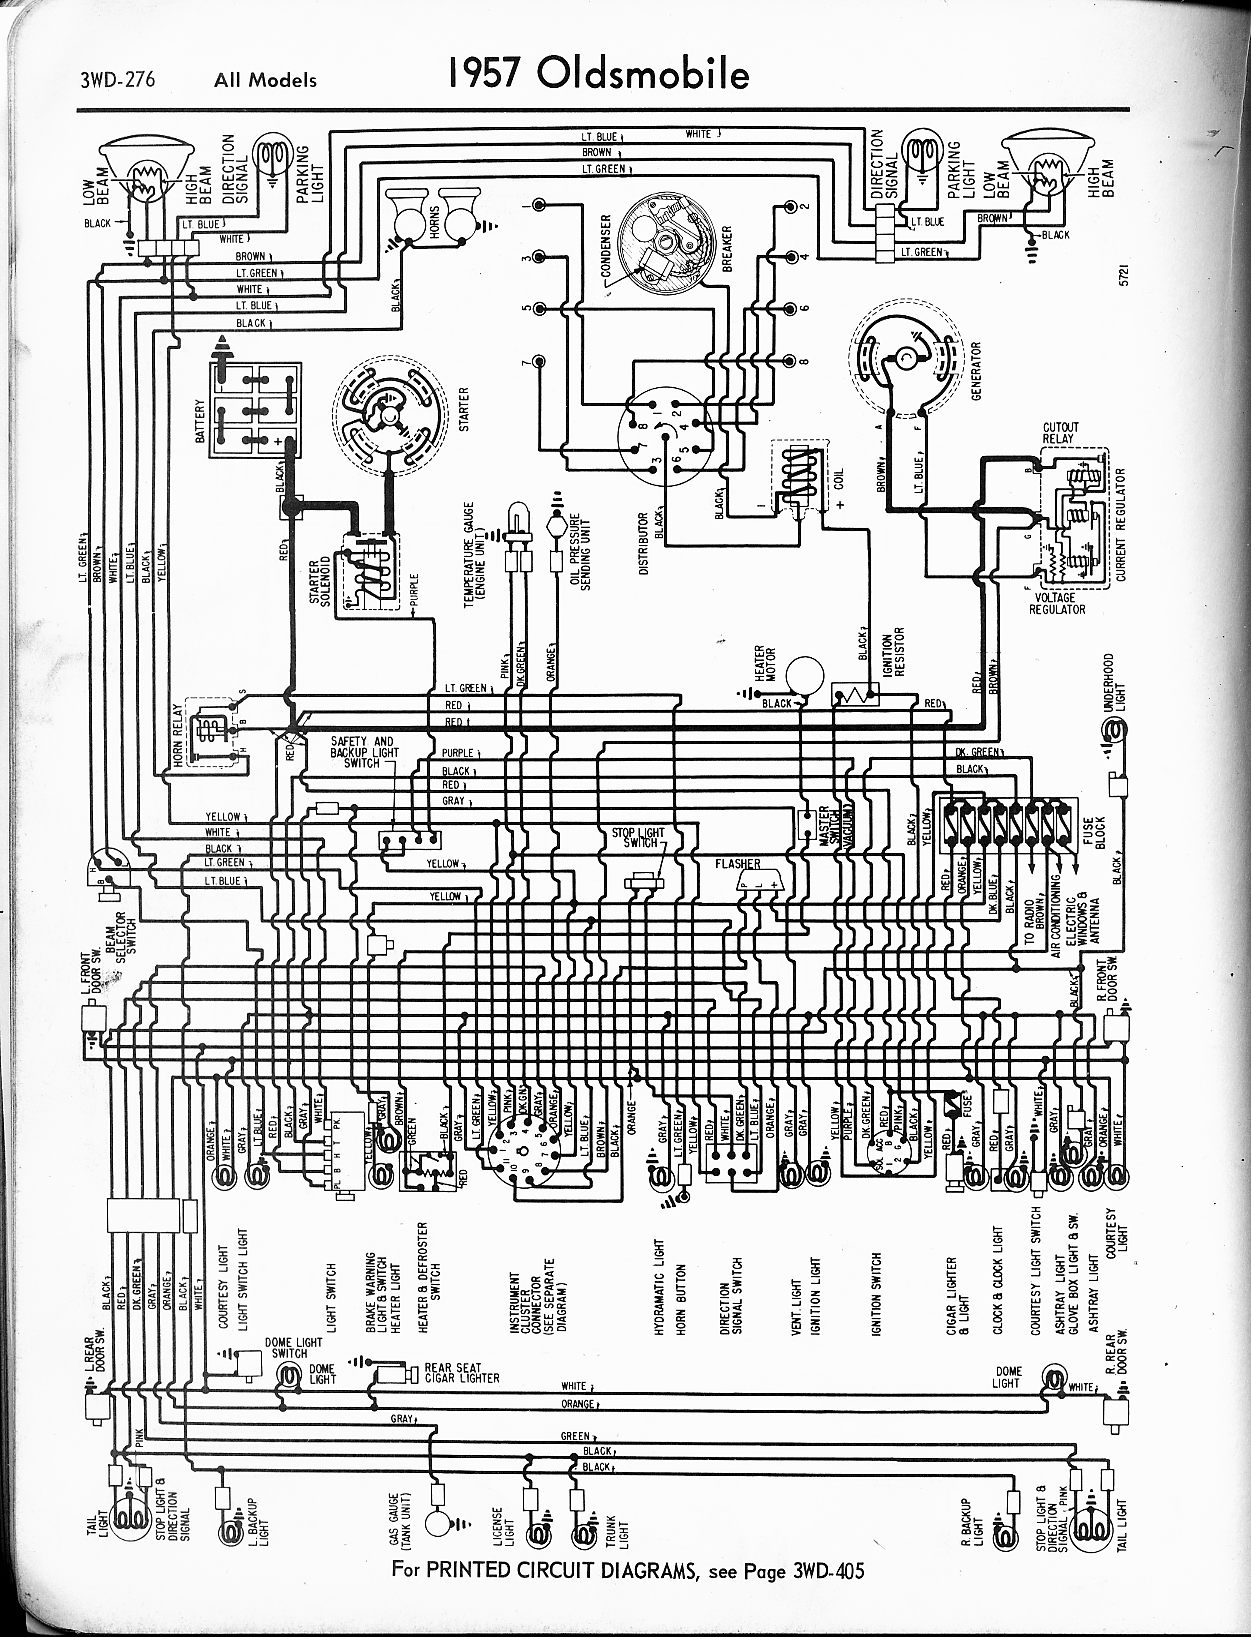 MWire5765 276 oldsmobile wiring diagrams the old car manual project  at reclaimingppi.co